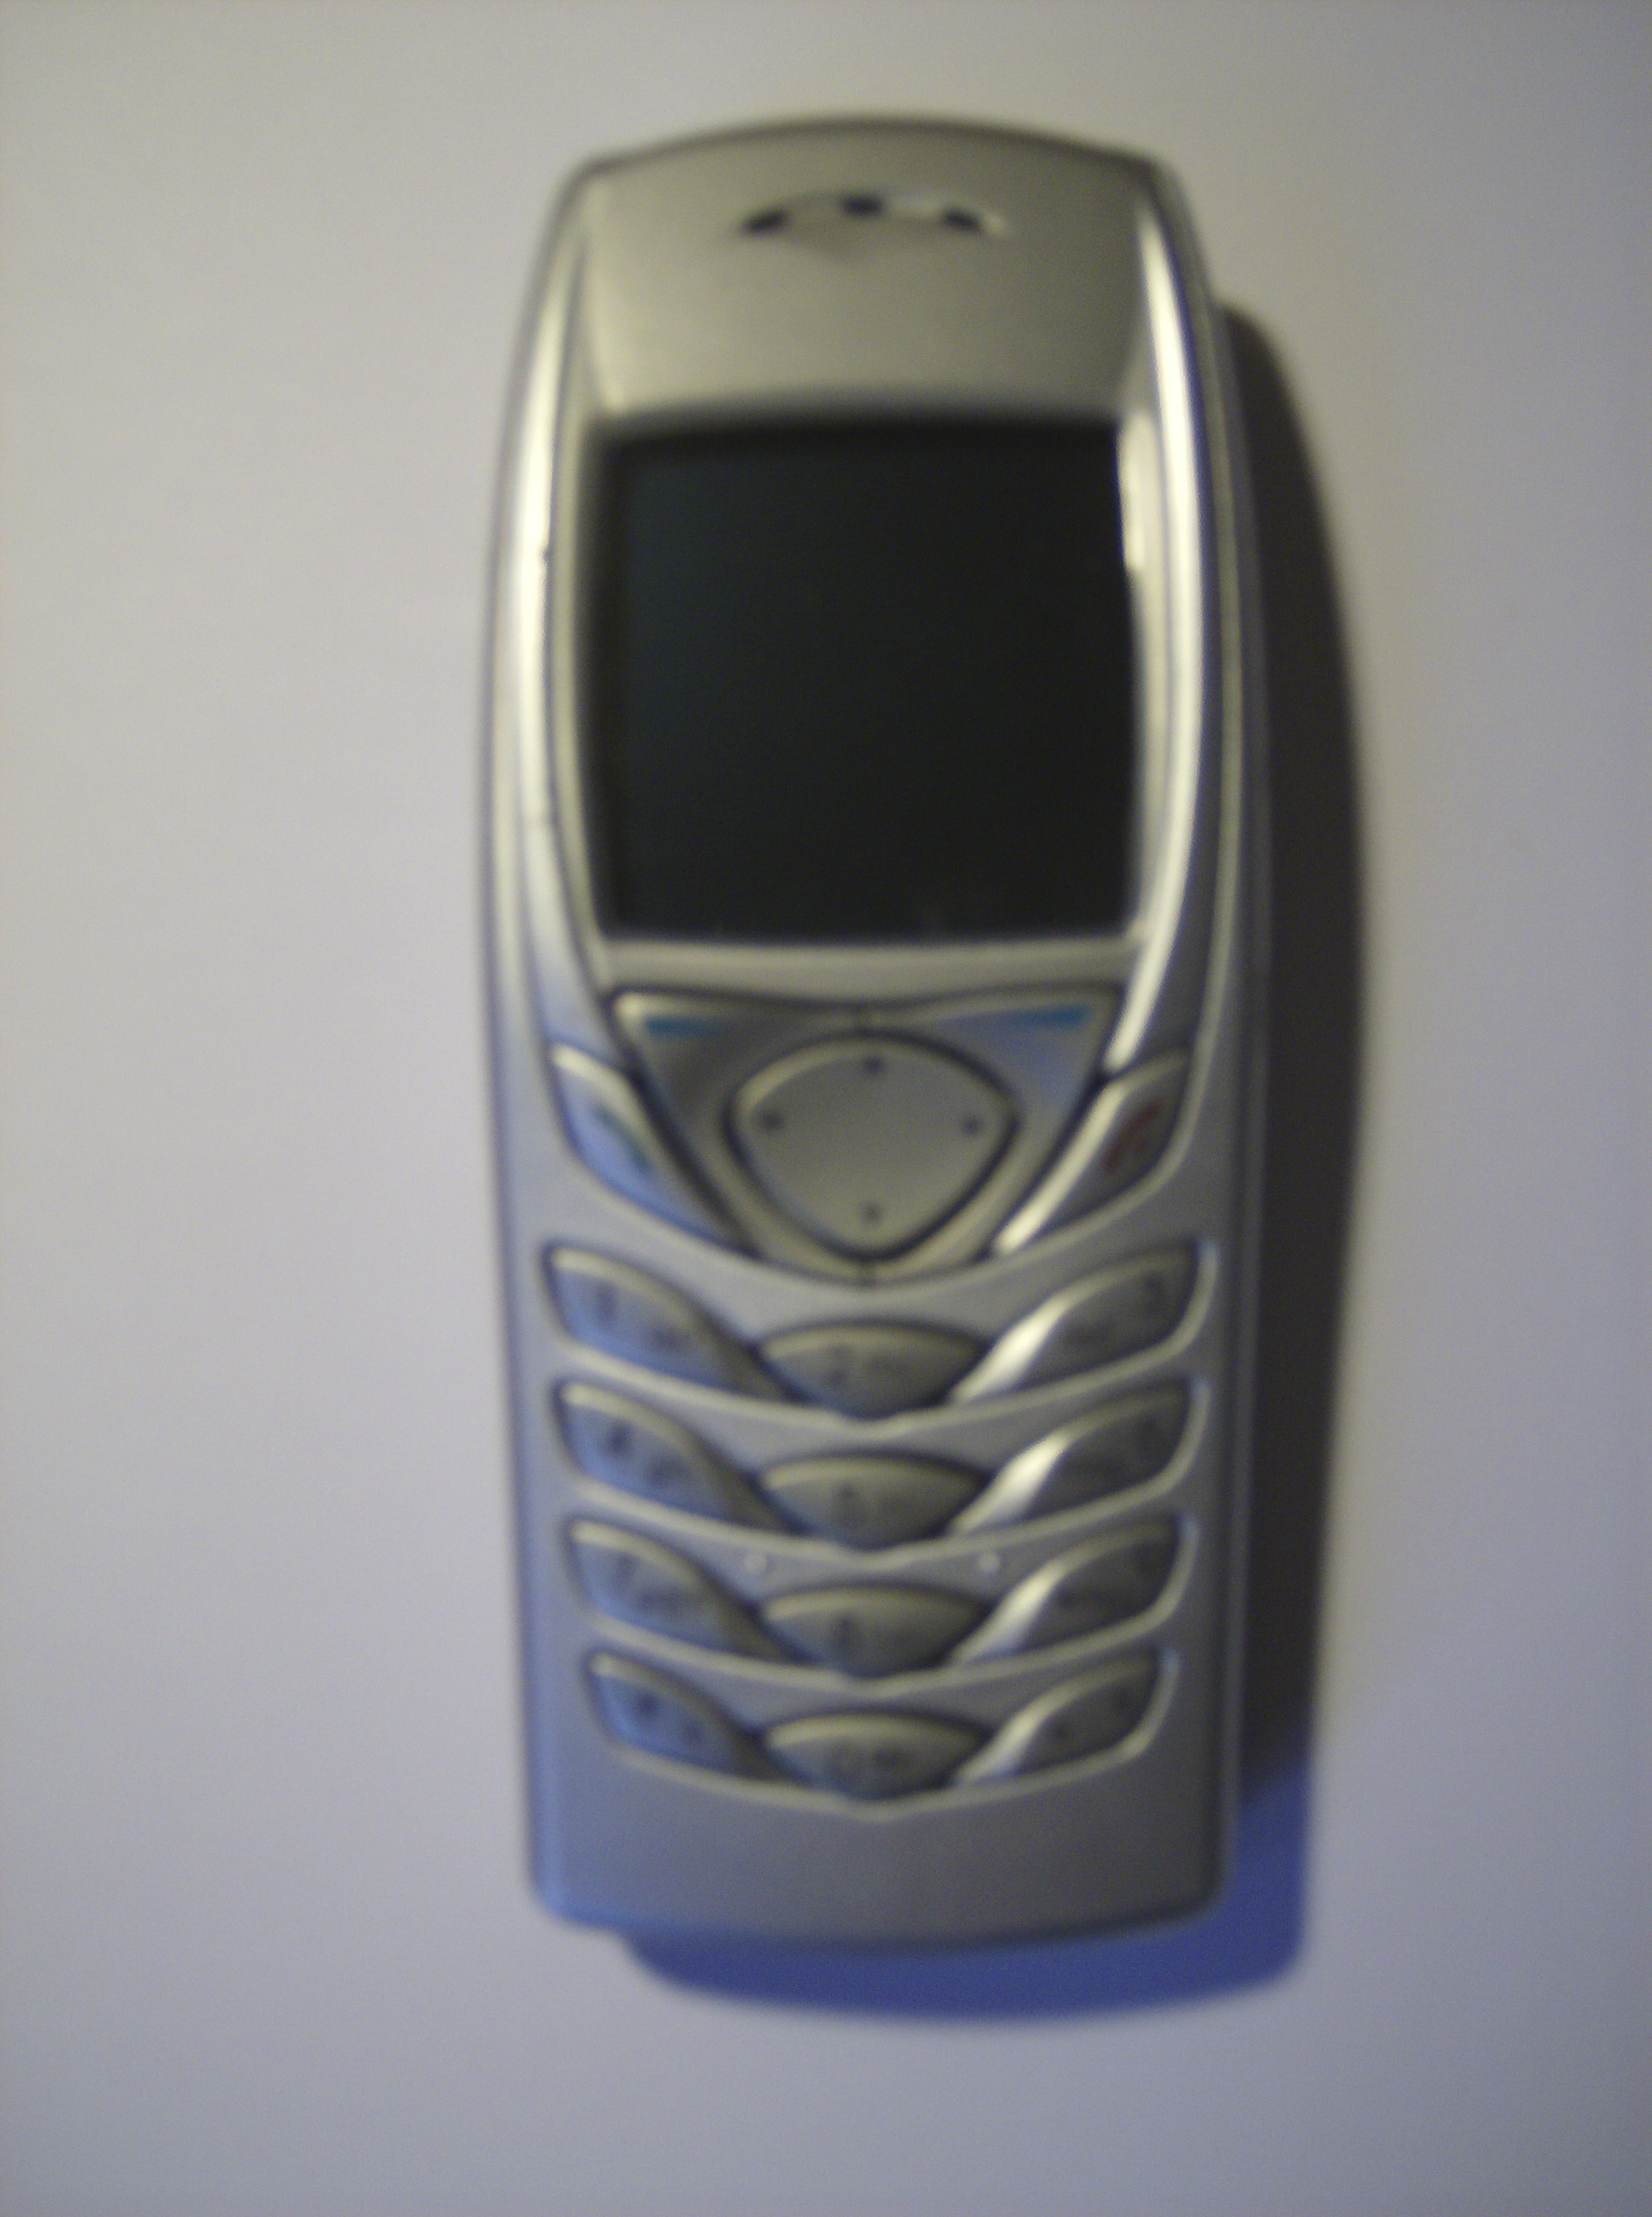 File Nokia 6100 JPG   Wikipedia  the free encyclopedia